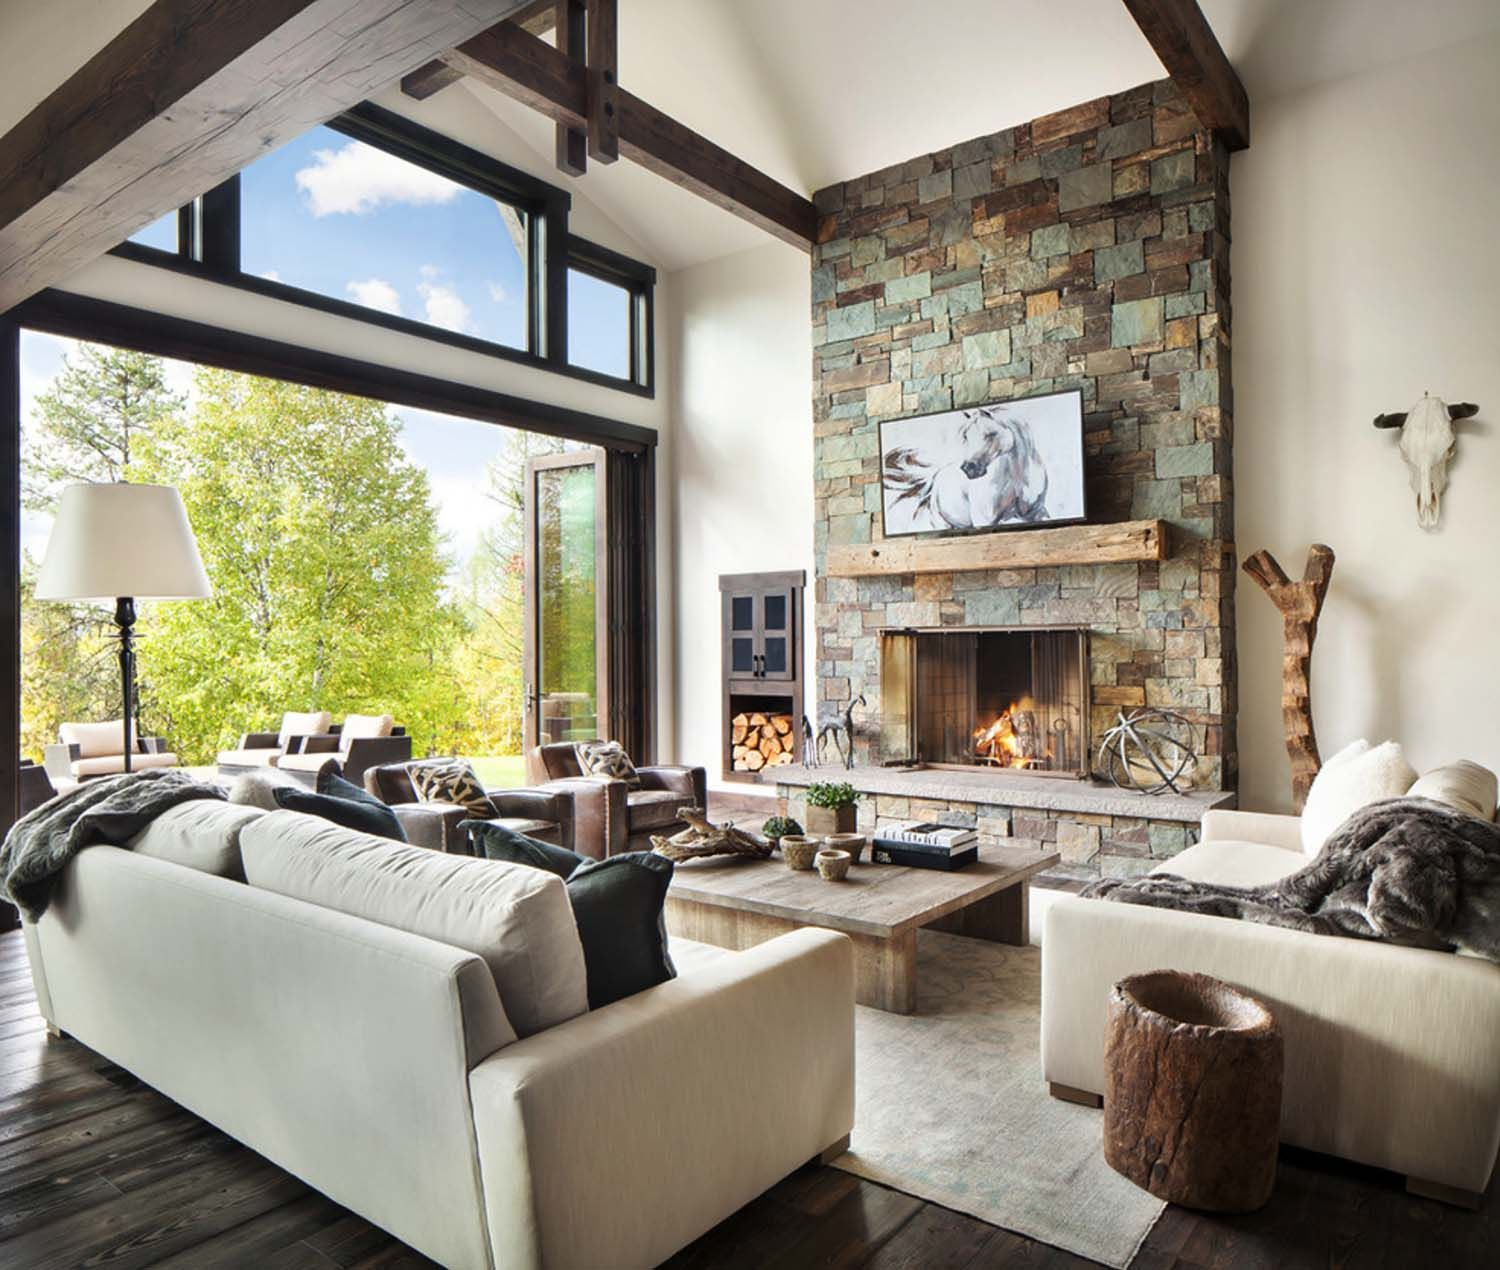 Interior Design Ideas For Home: Rustic-modern Dwelling Nestled In The Northern Rocky